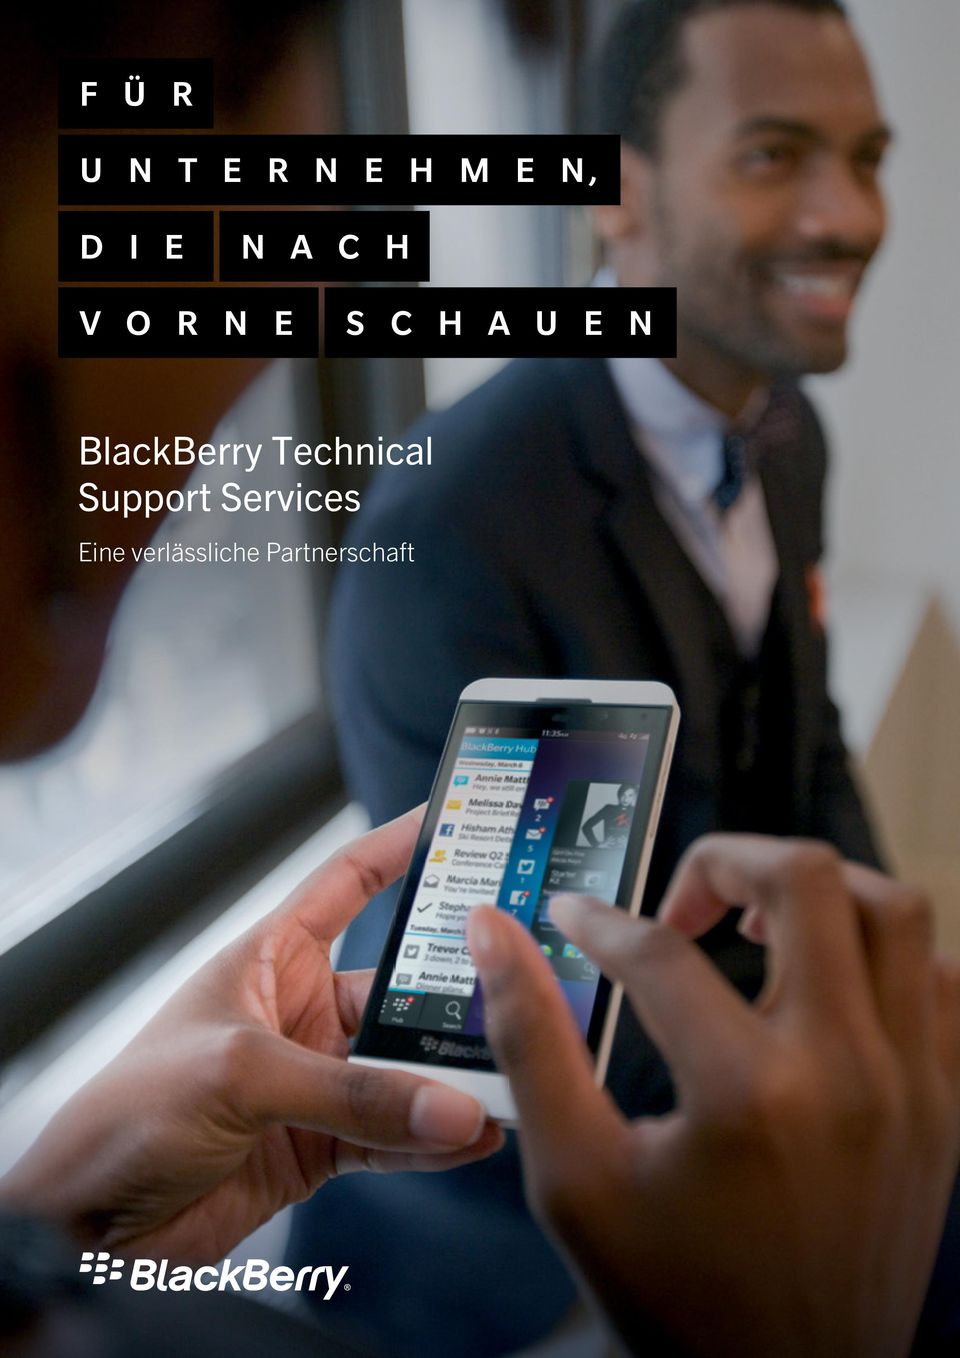 BlackBerry Technical Support